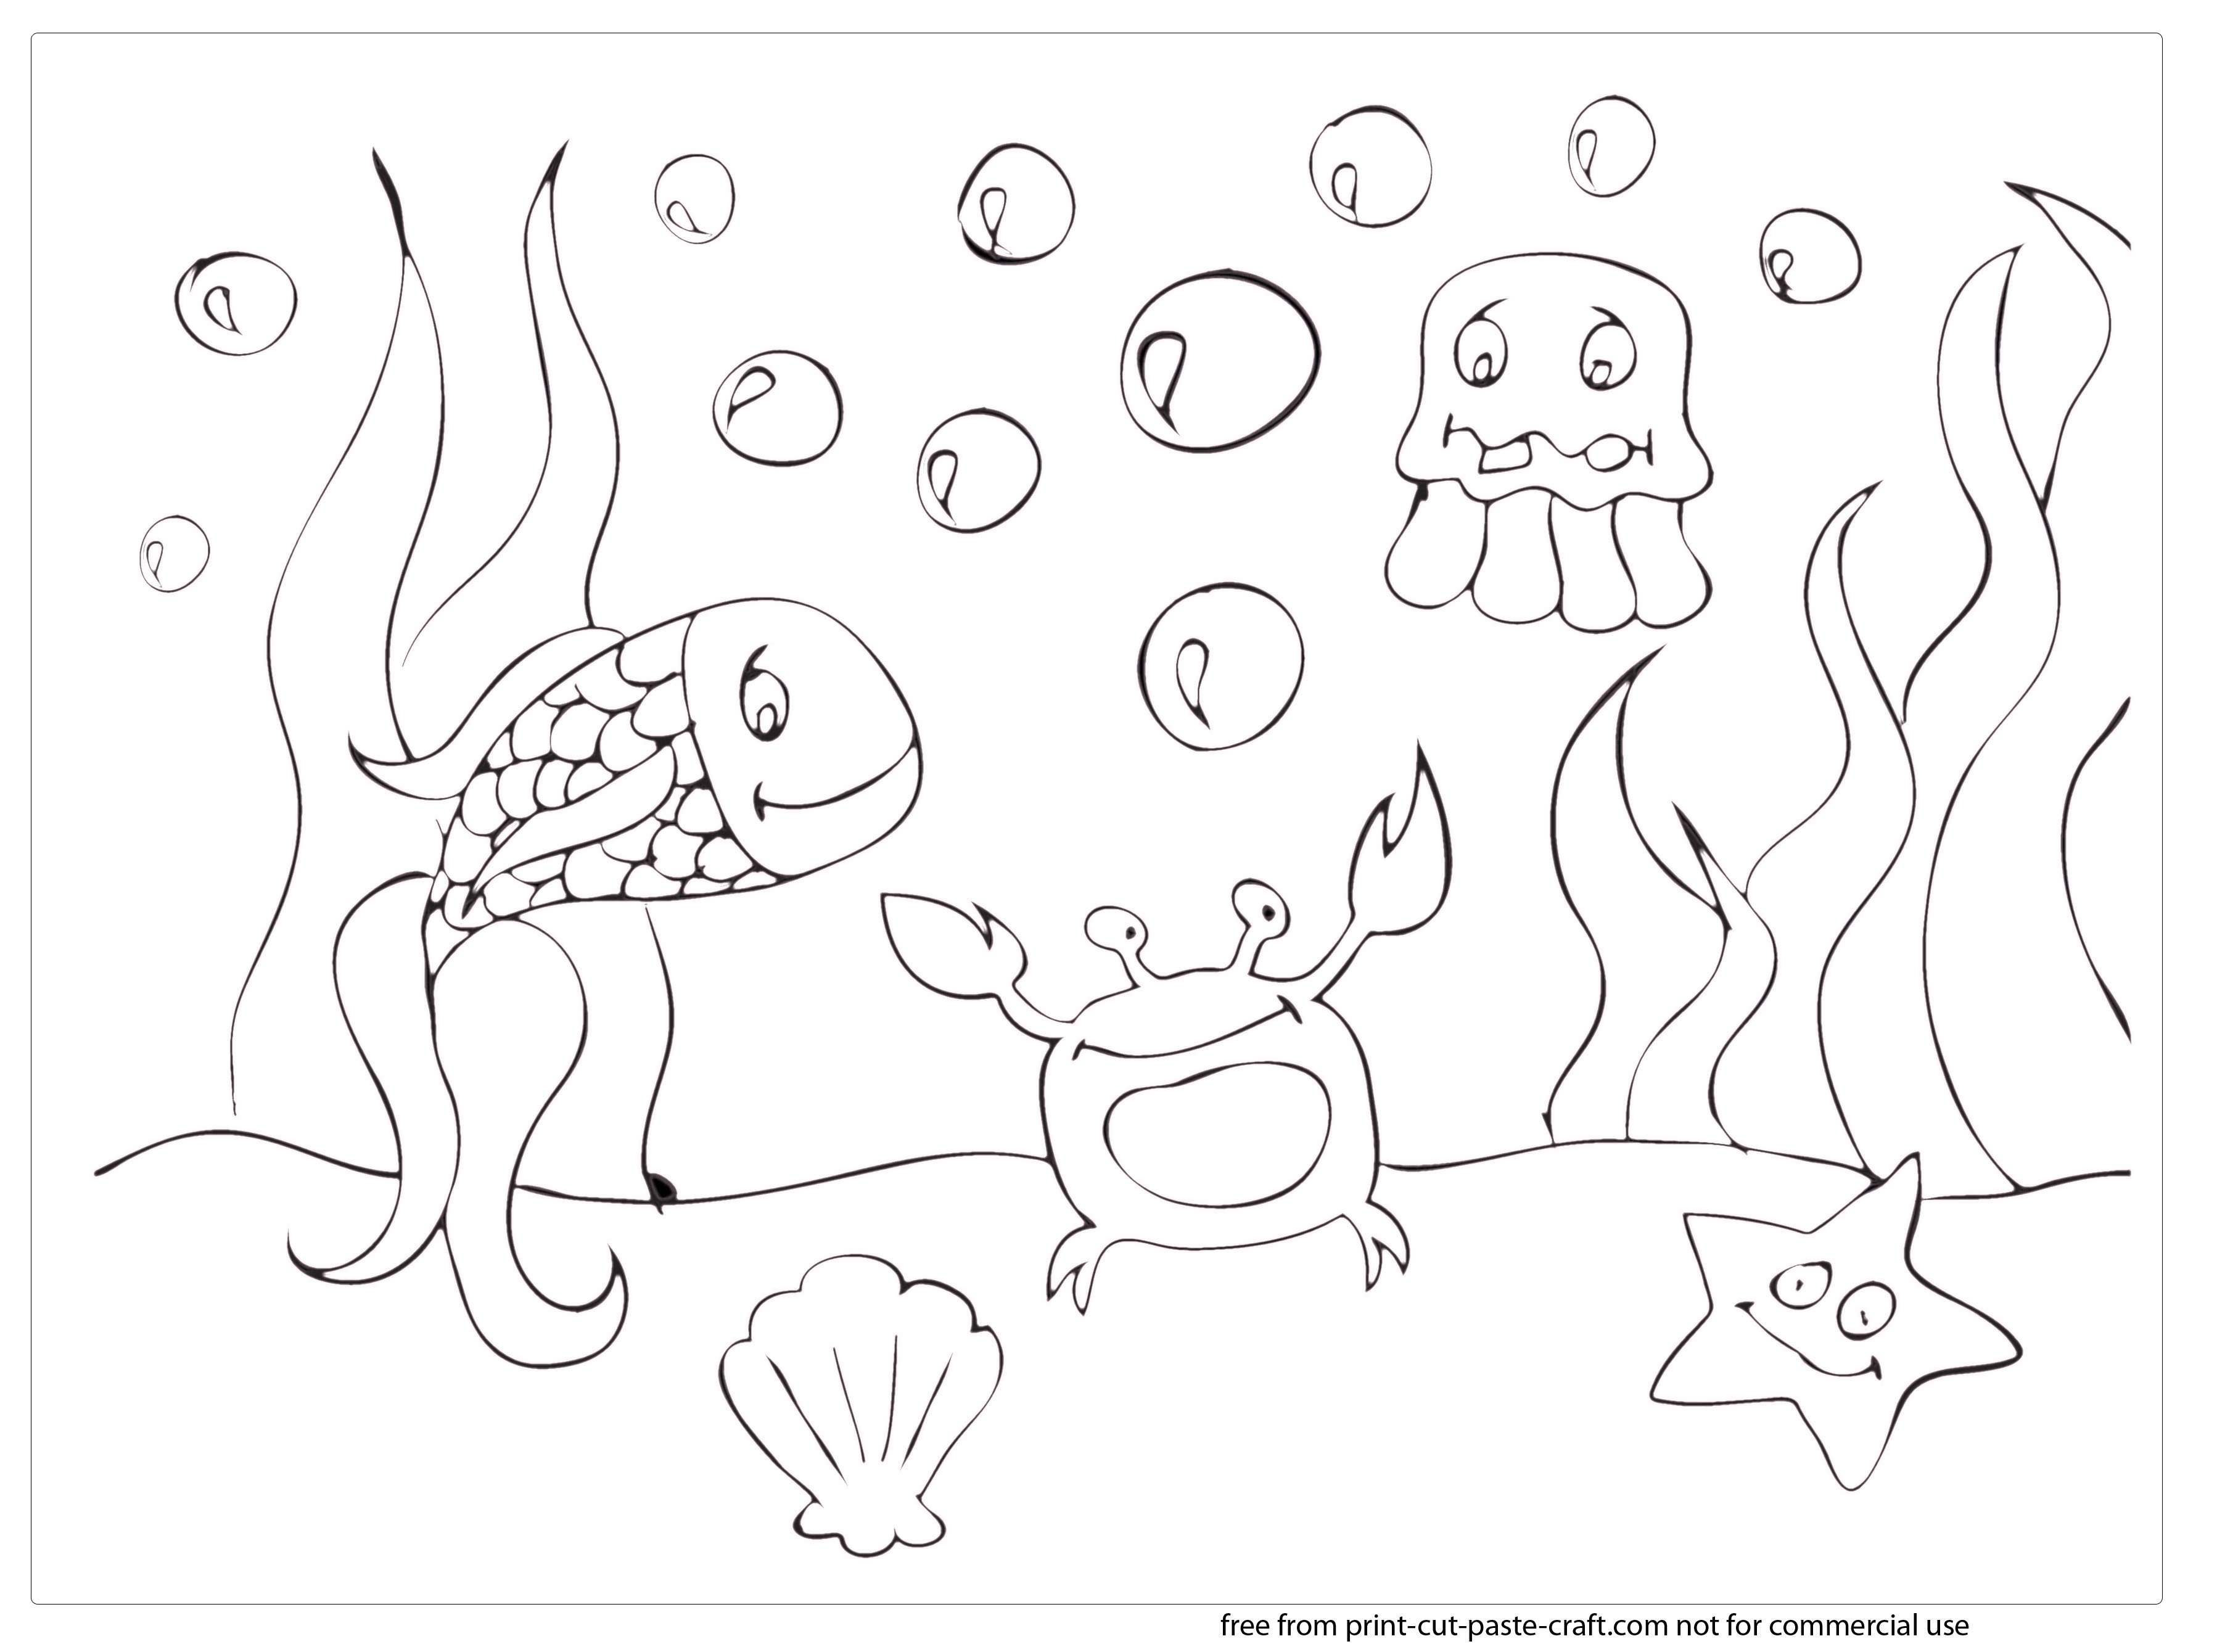 World Under Sea Drawing At Getdrawings